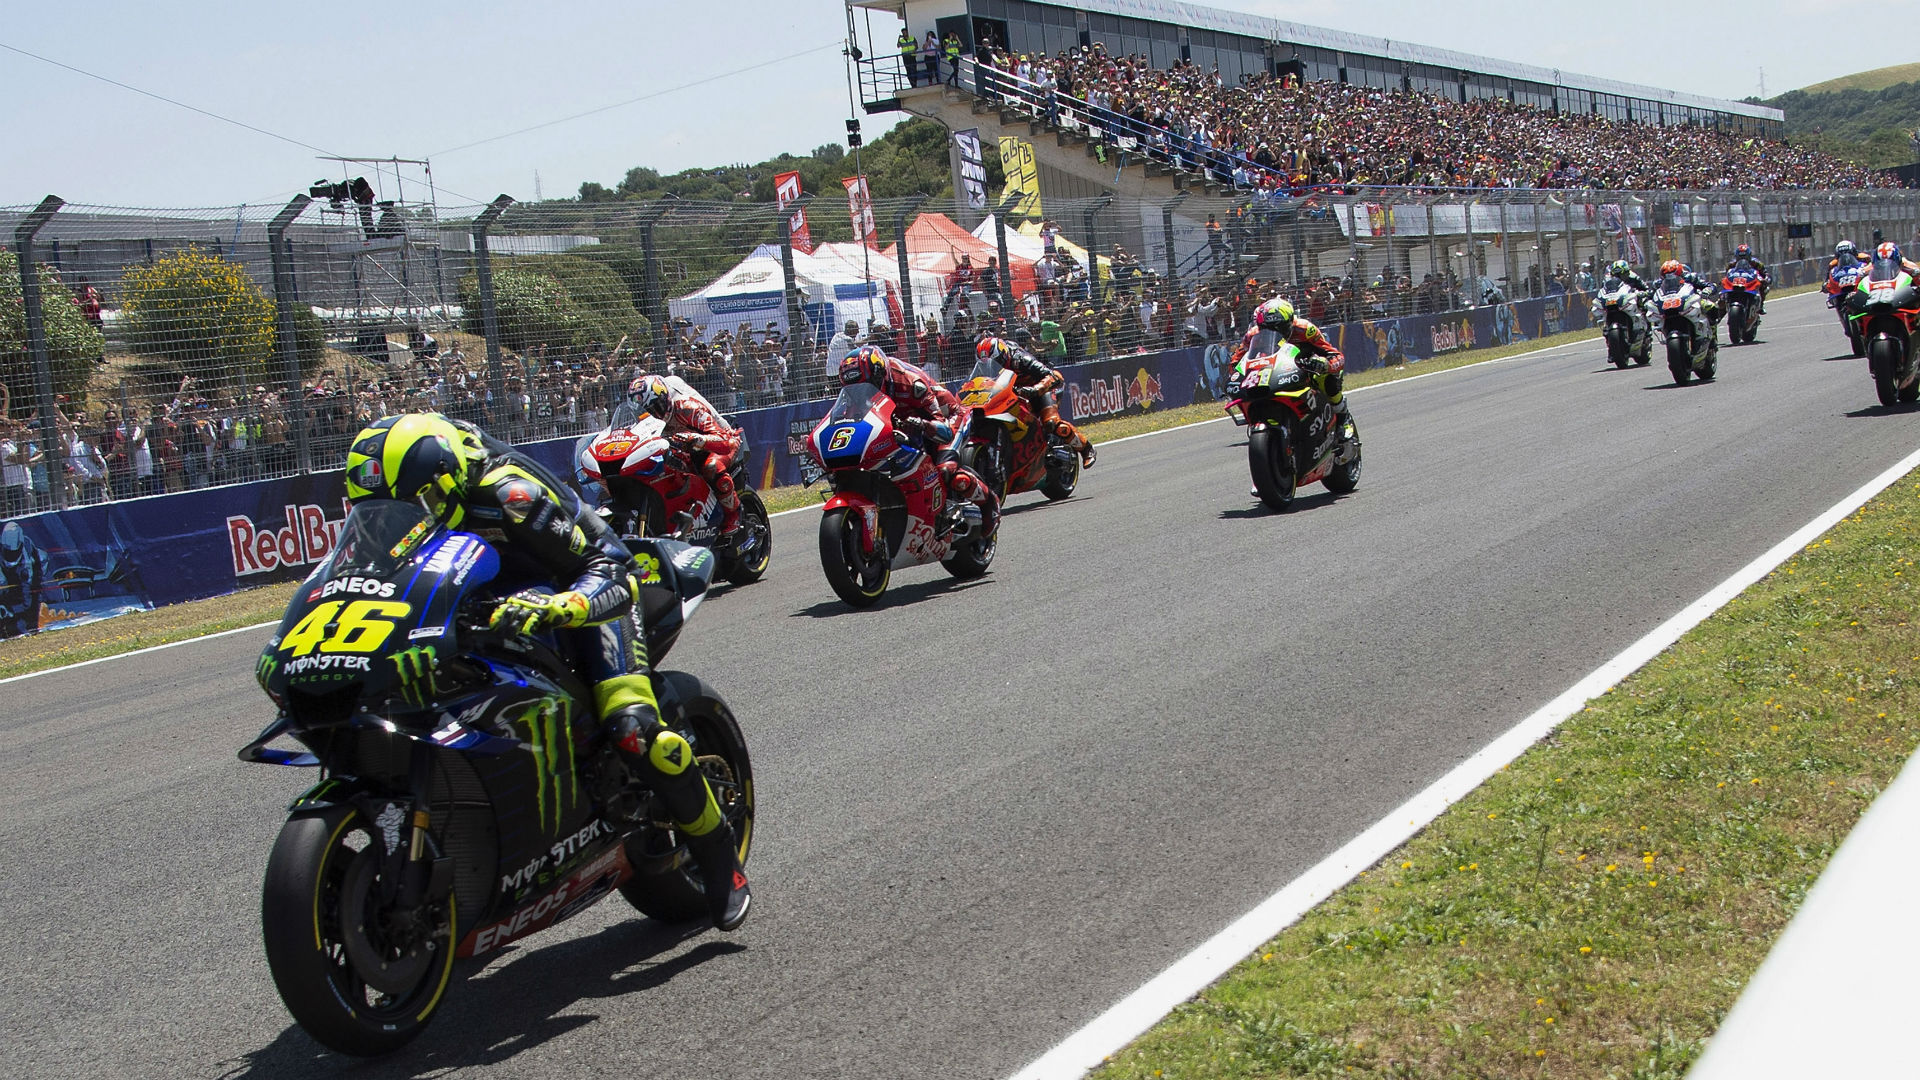 Jerez will not stage the season-opening race in May after the Spanish Grand Prix was postponed due to coronavirus.